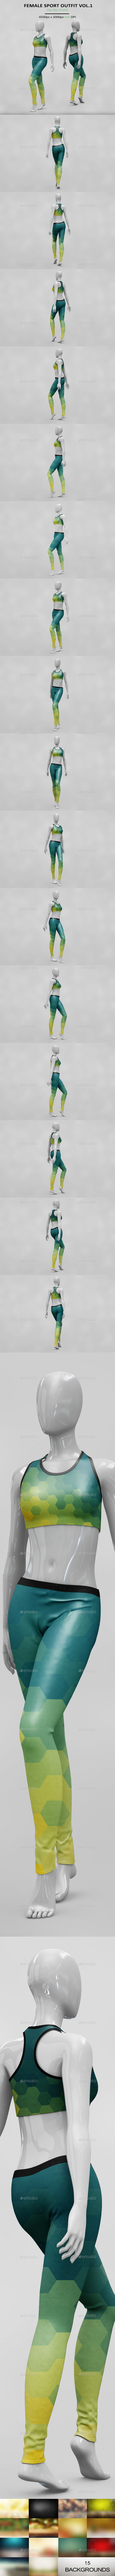 GraphicRiver Female Sport Outfit MockUp 20351929